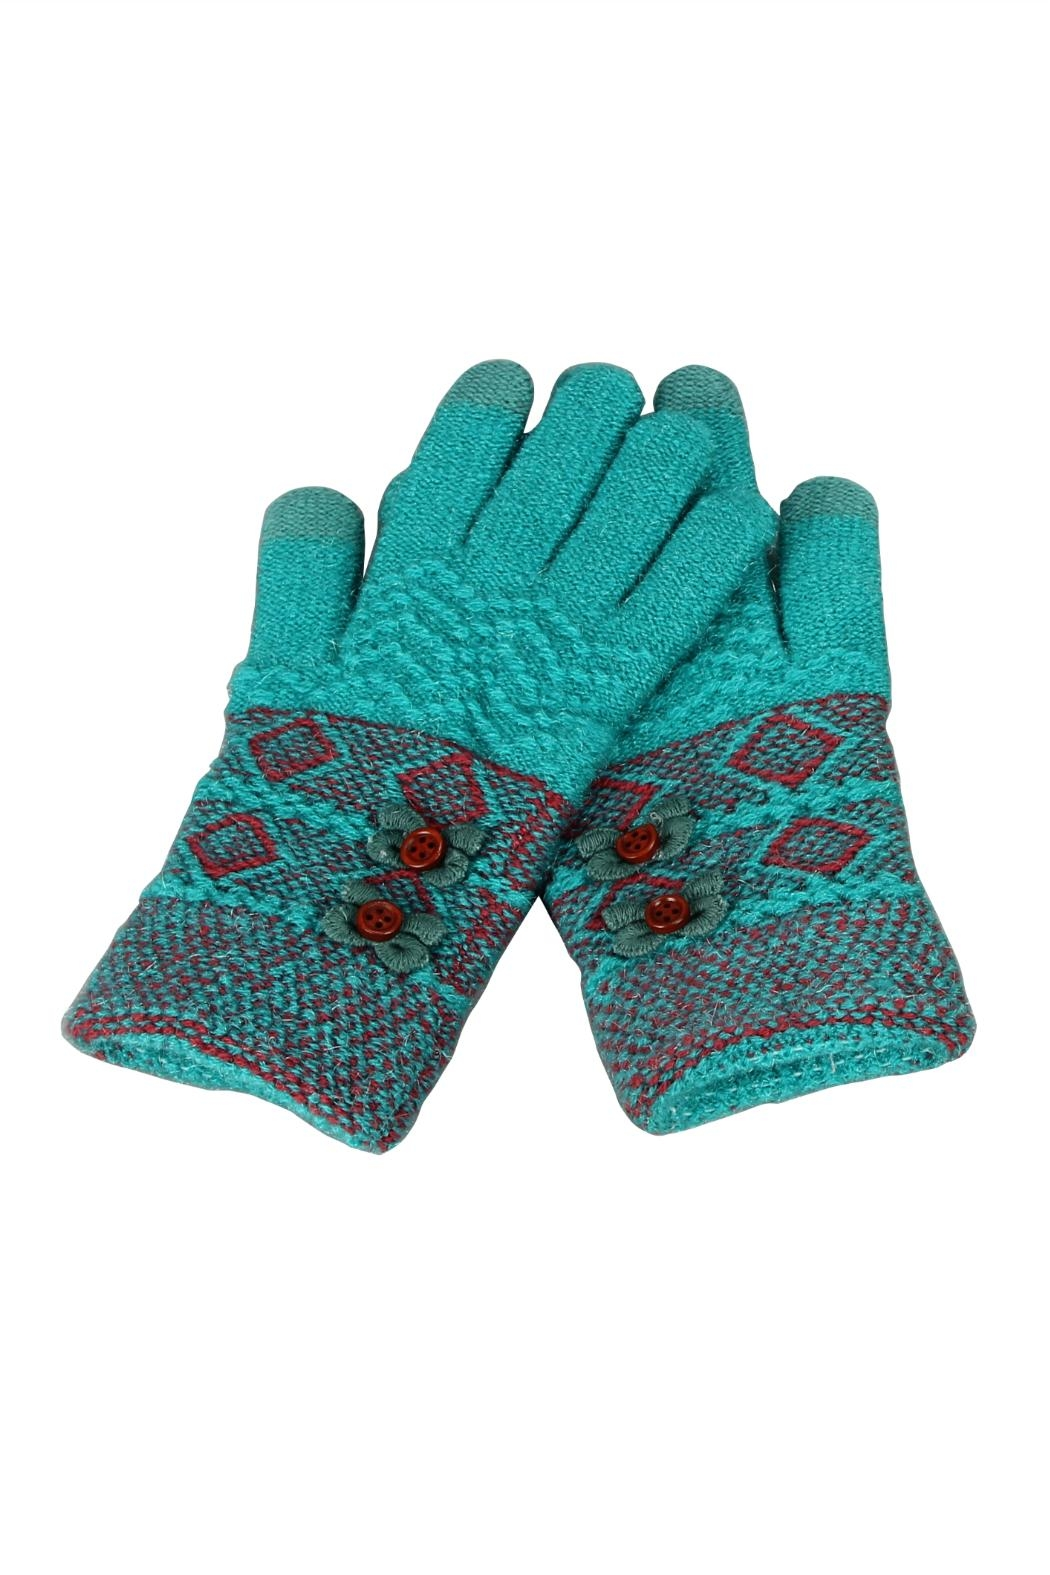 Victoria Leland Designs Knit Texting Gloves - Main Image